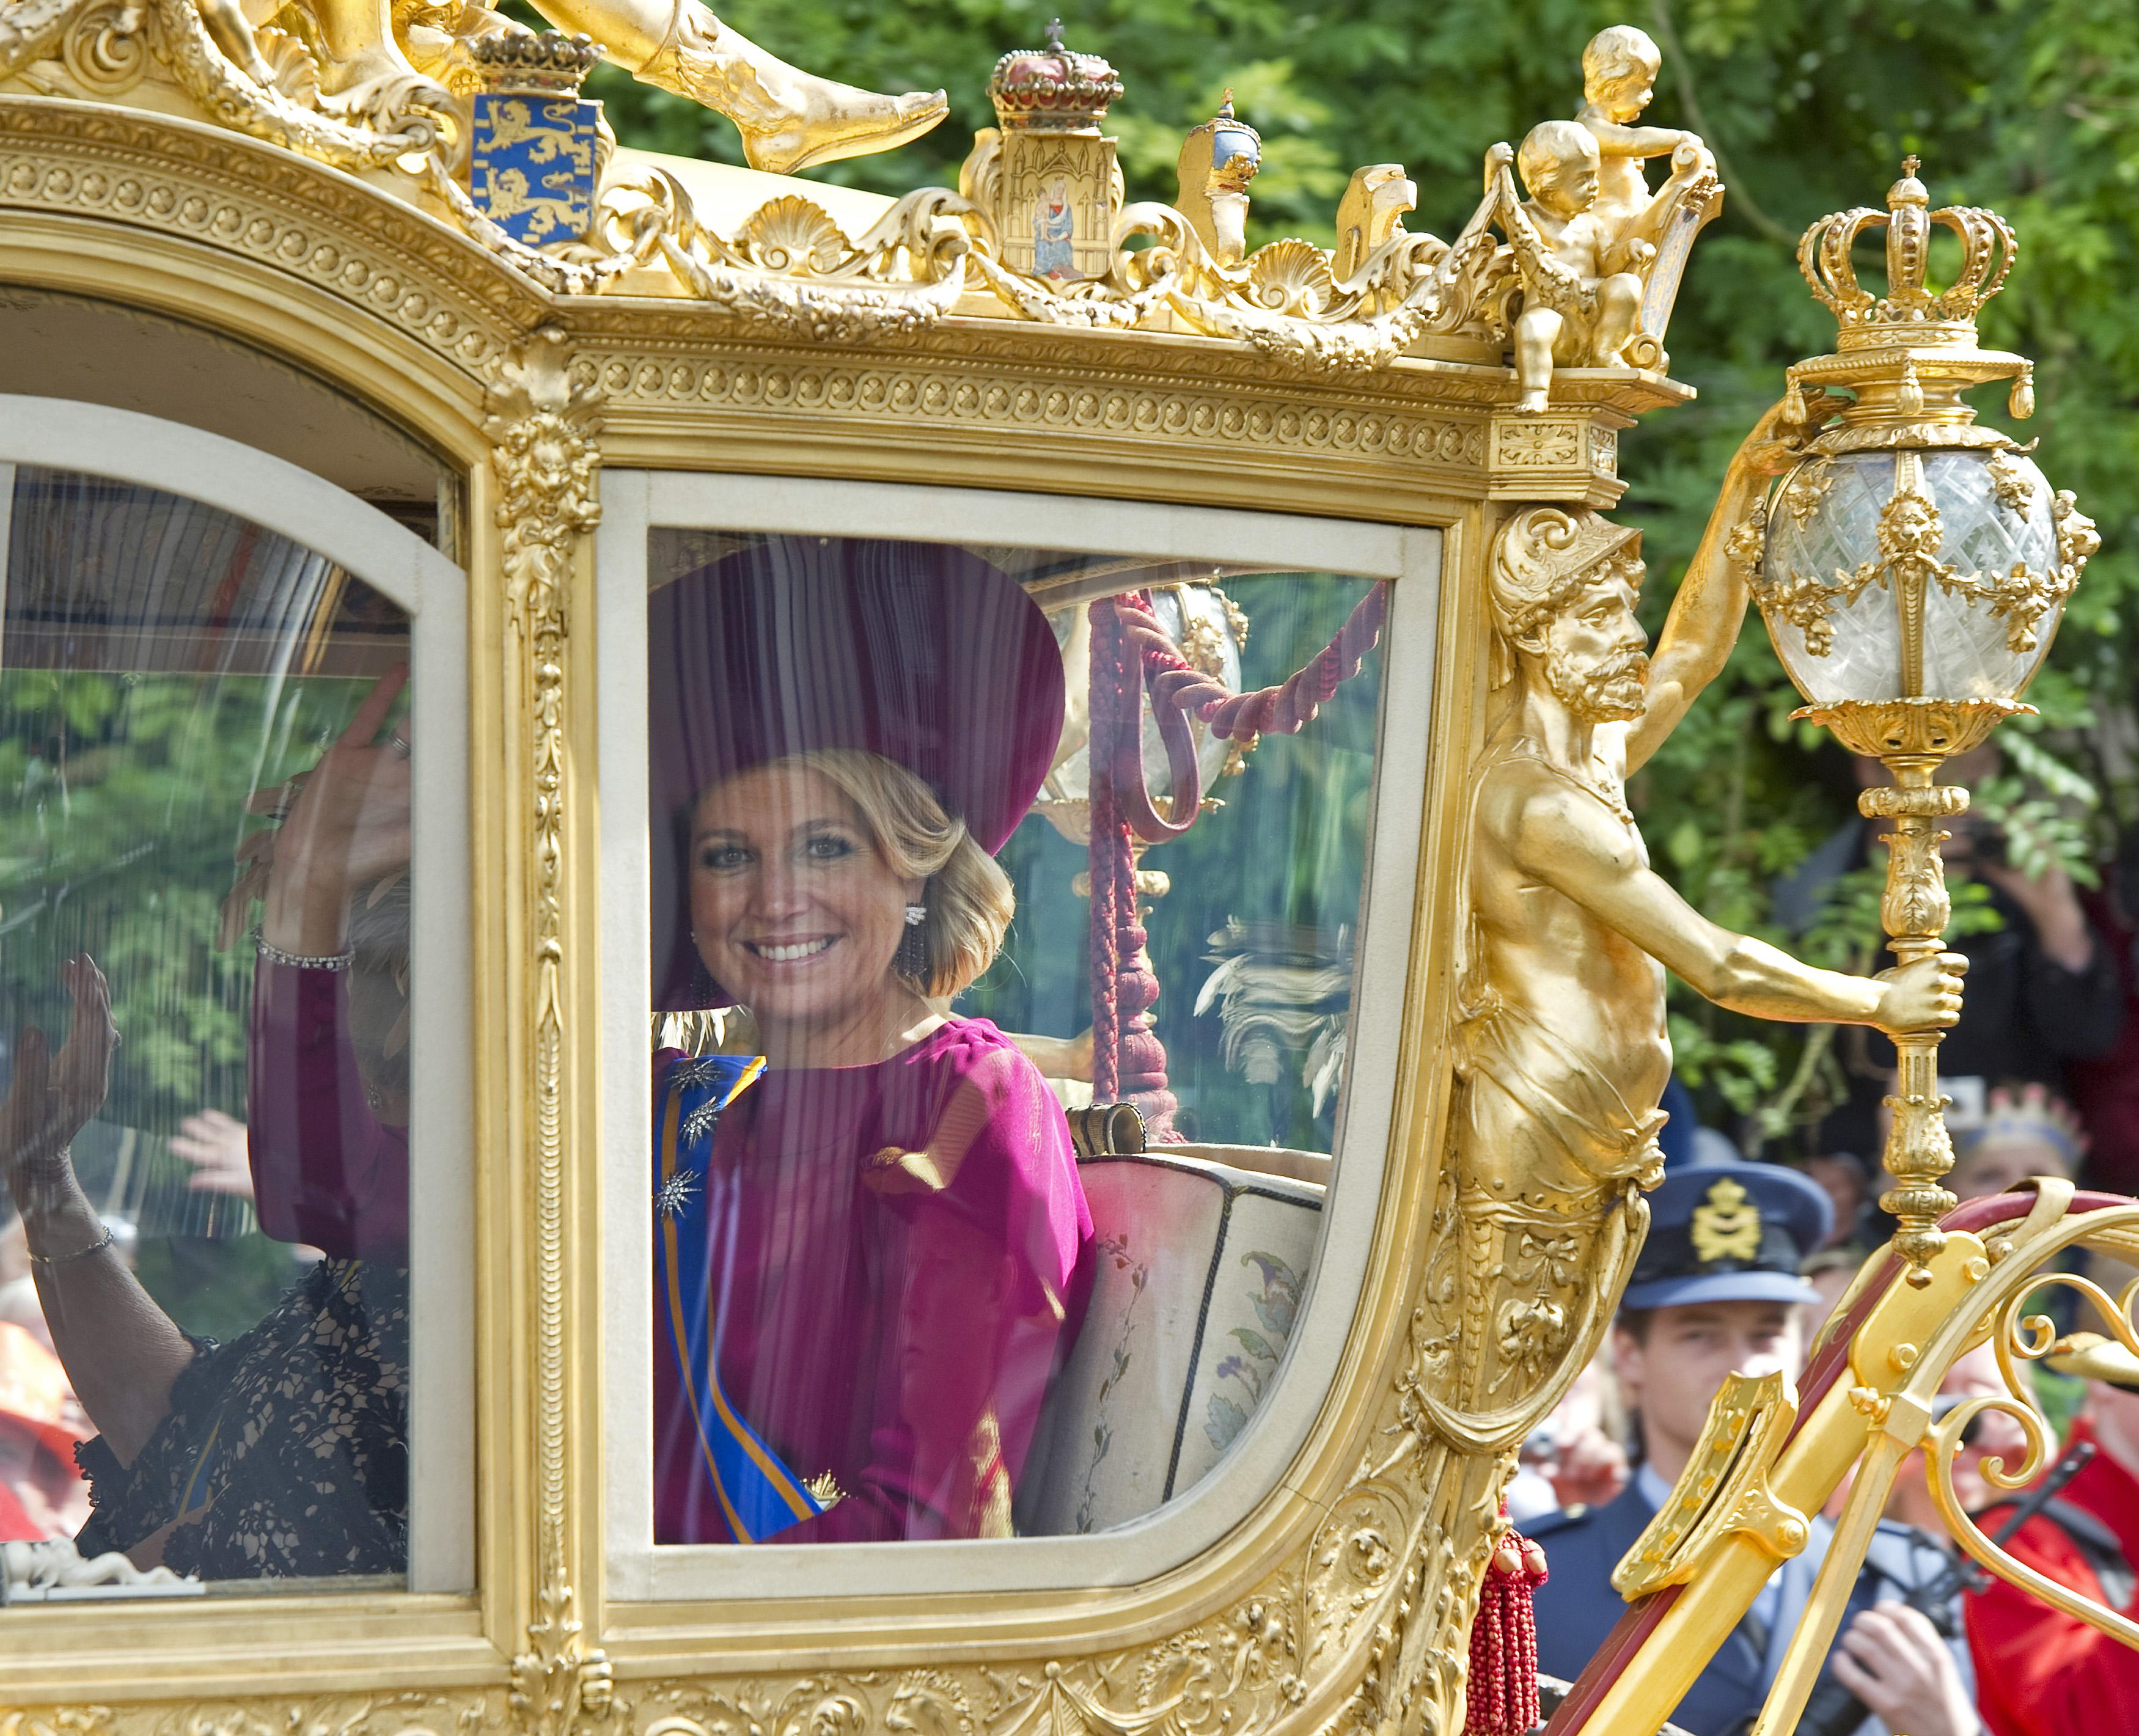 Queen Maxima in a carriage